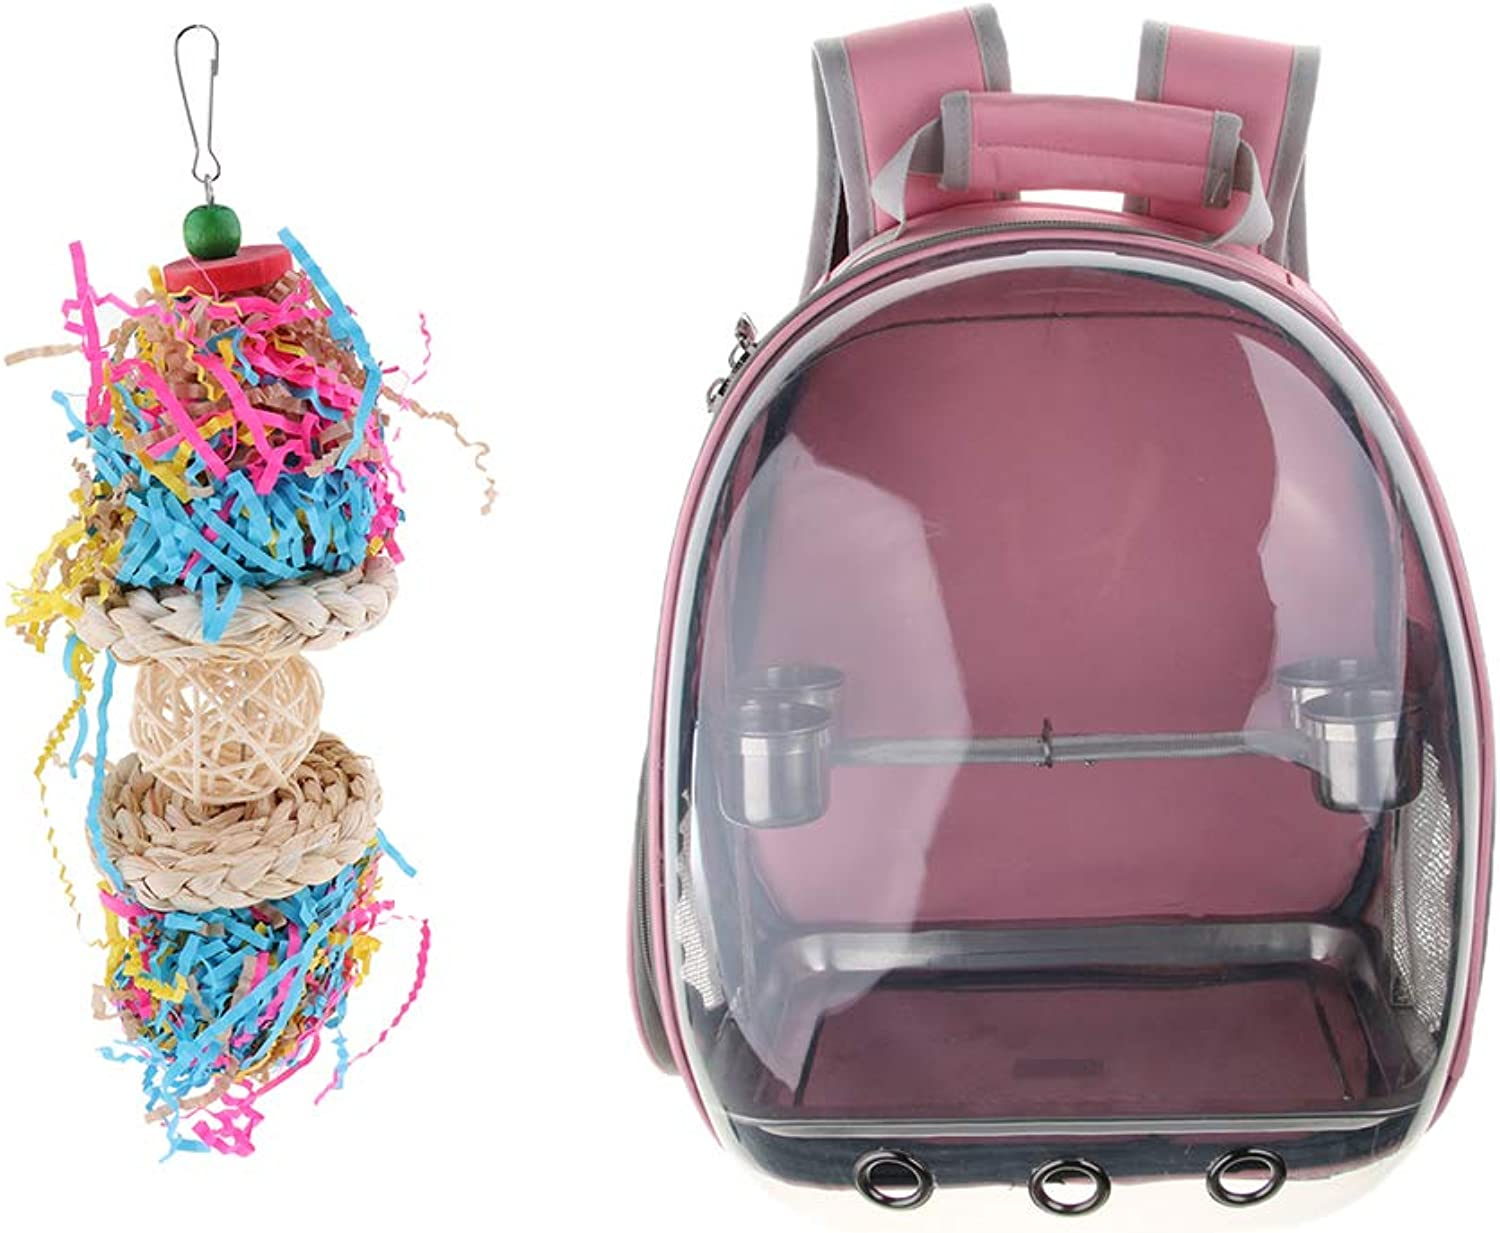 Baoblaze Breathable and Comfortable Birds Travel Backpack + Parred Swing Chew Toys